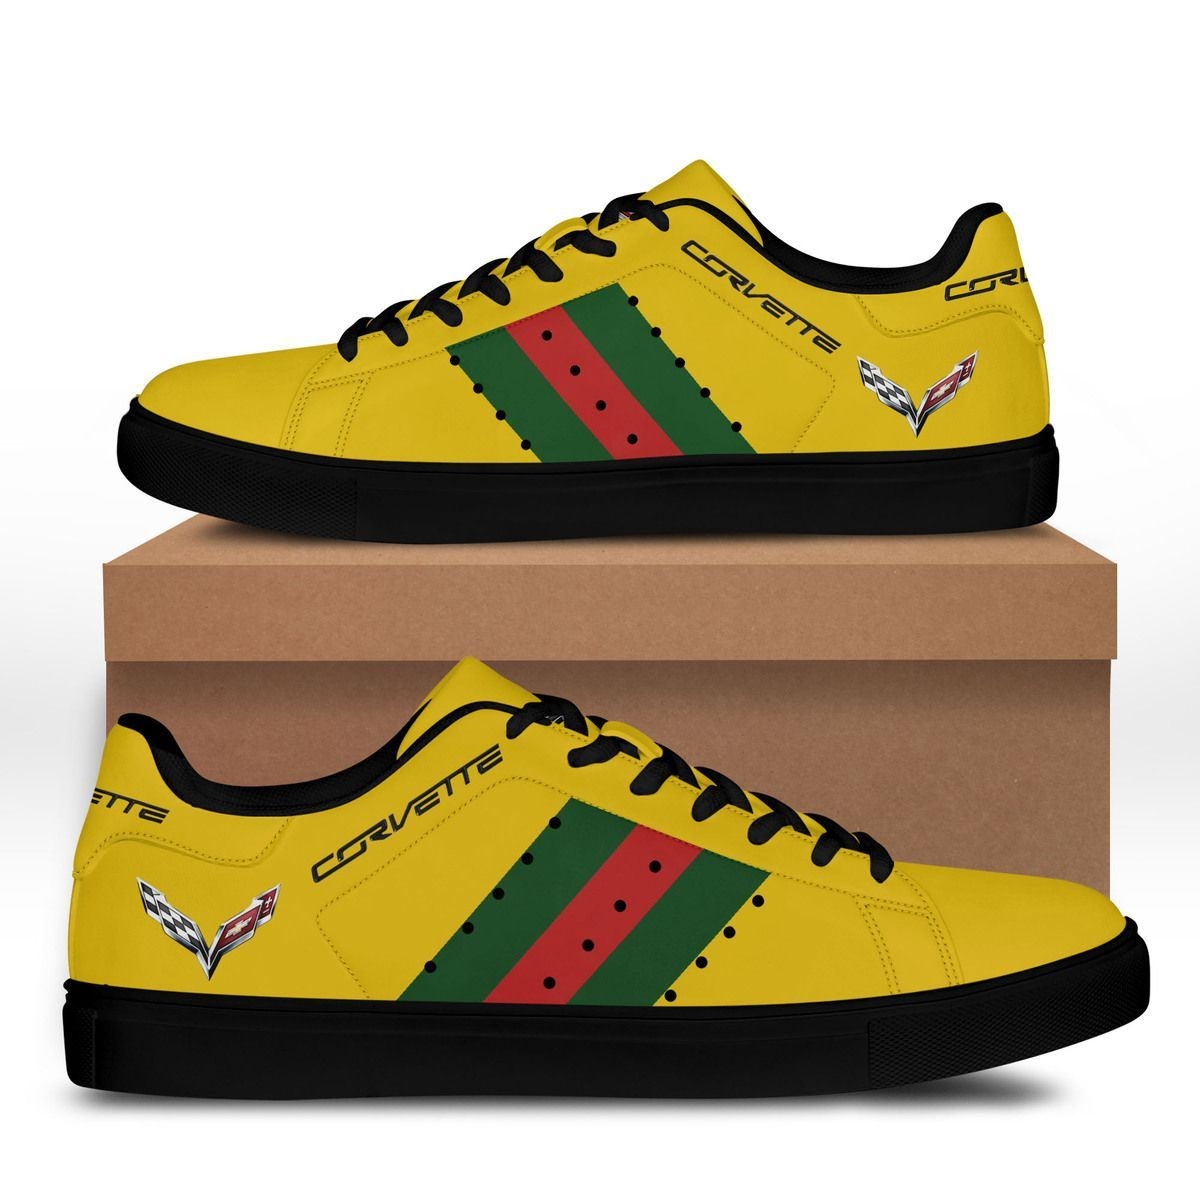 Chevrolet Corvette Green red lines Yellow Stan Smith Shoes